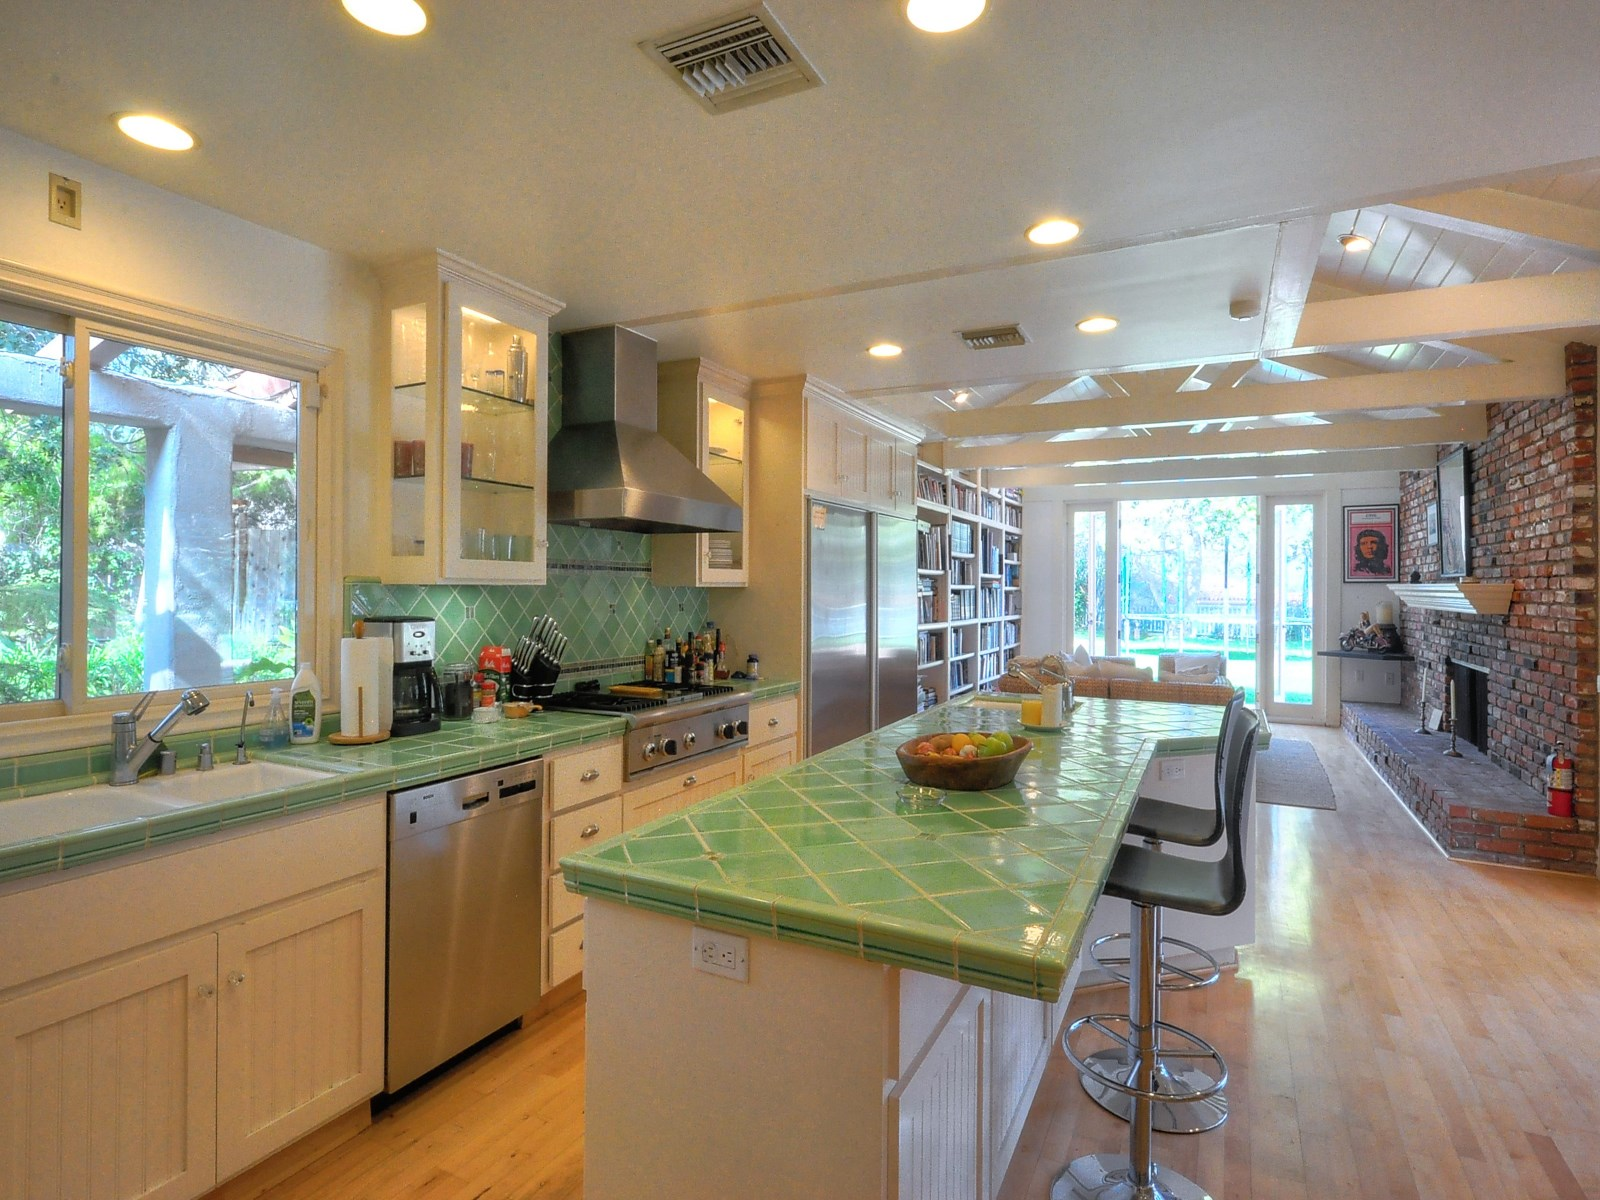 Refreshing green countertops and beadboard cabinets - Sean Penn Malibu home -sothebyshomes